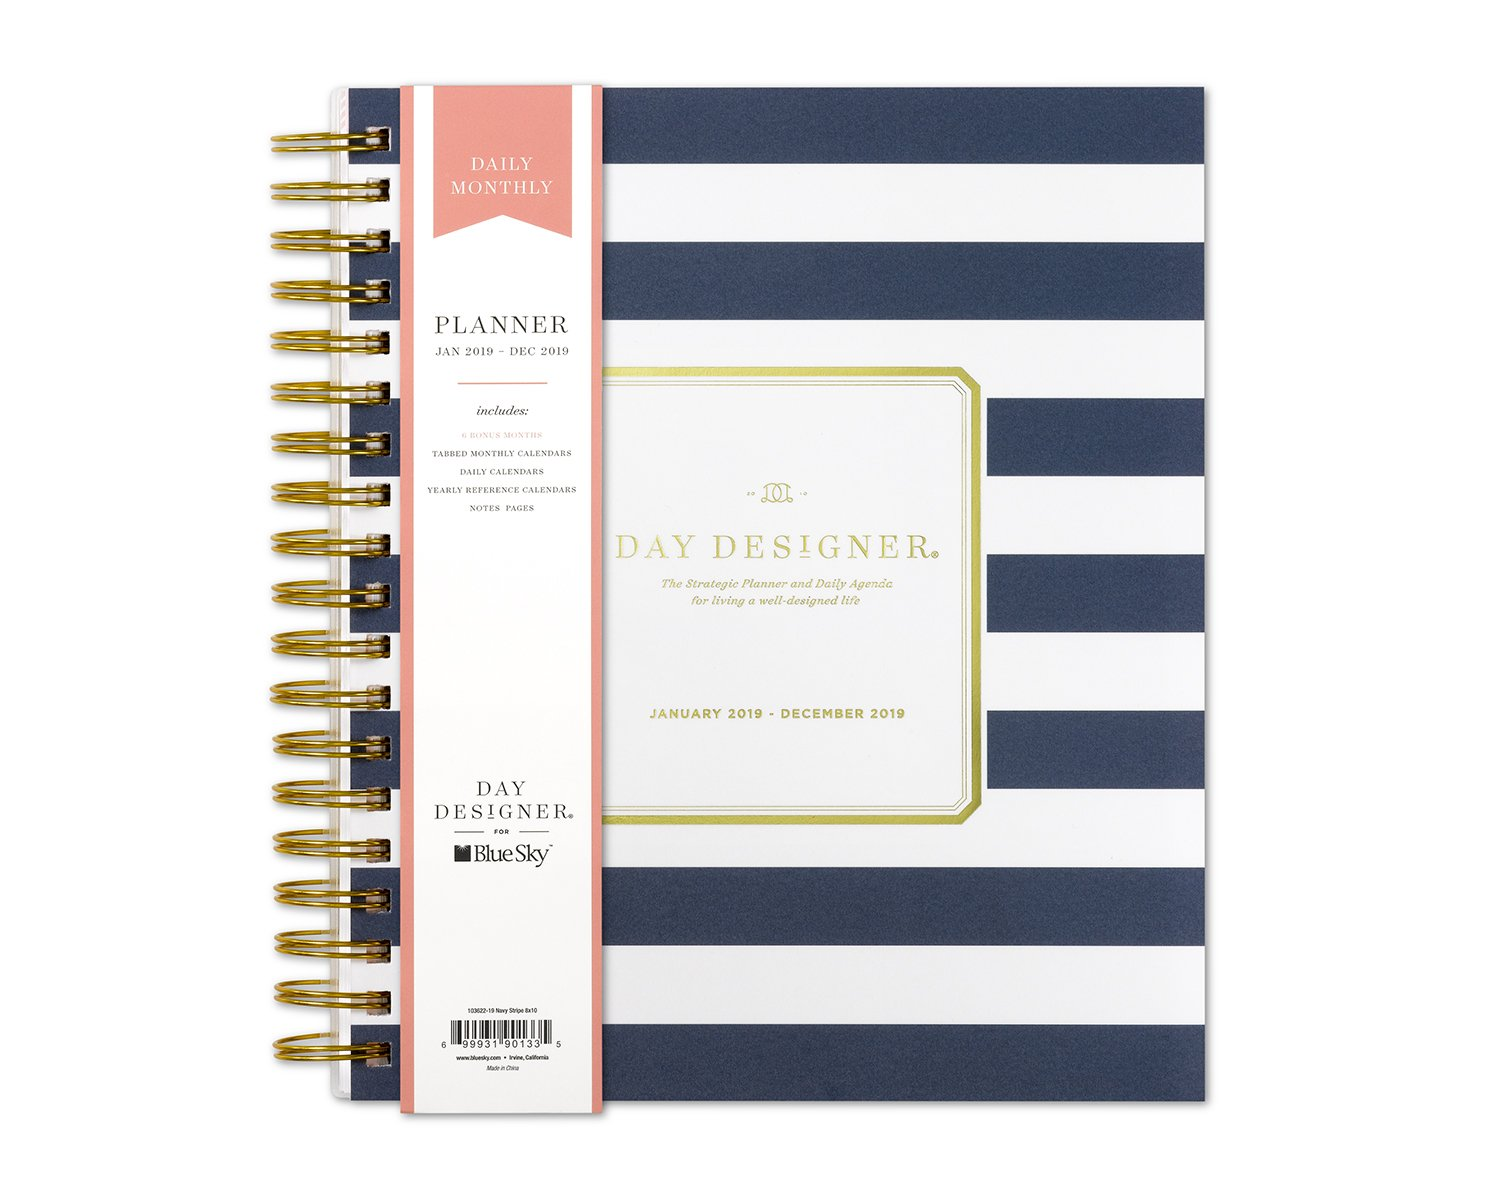 Day Designer for Blue Sky 2019 Daily & Monthly Planner, Flexible Frosted Cover, Twin-Wire Binding, 8'' x 10'', Navy Stripe